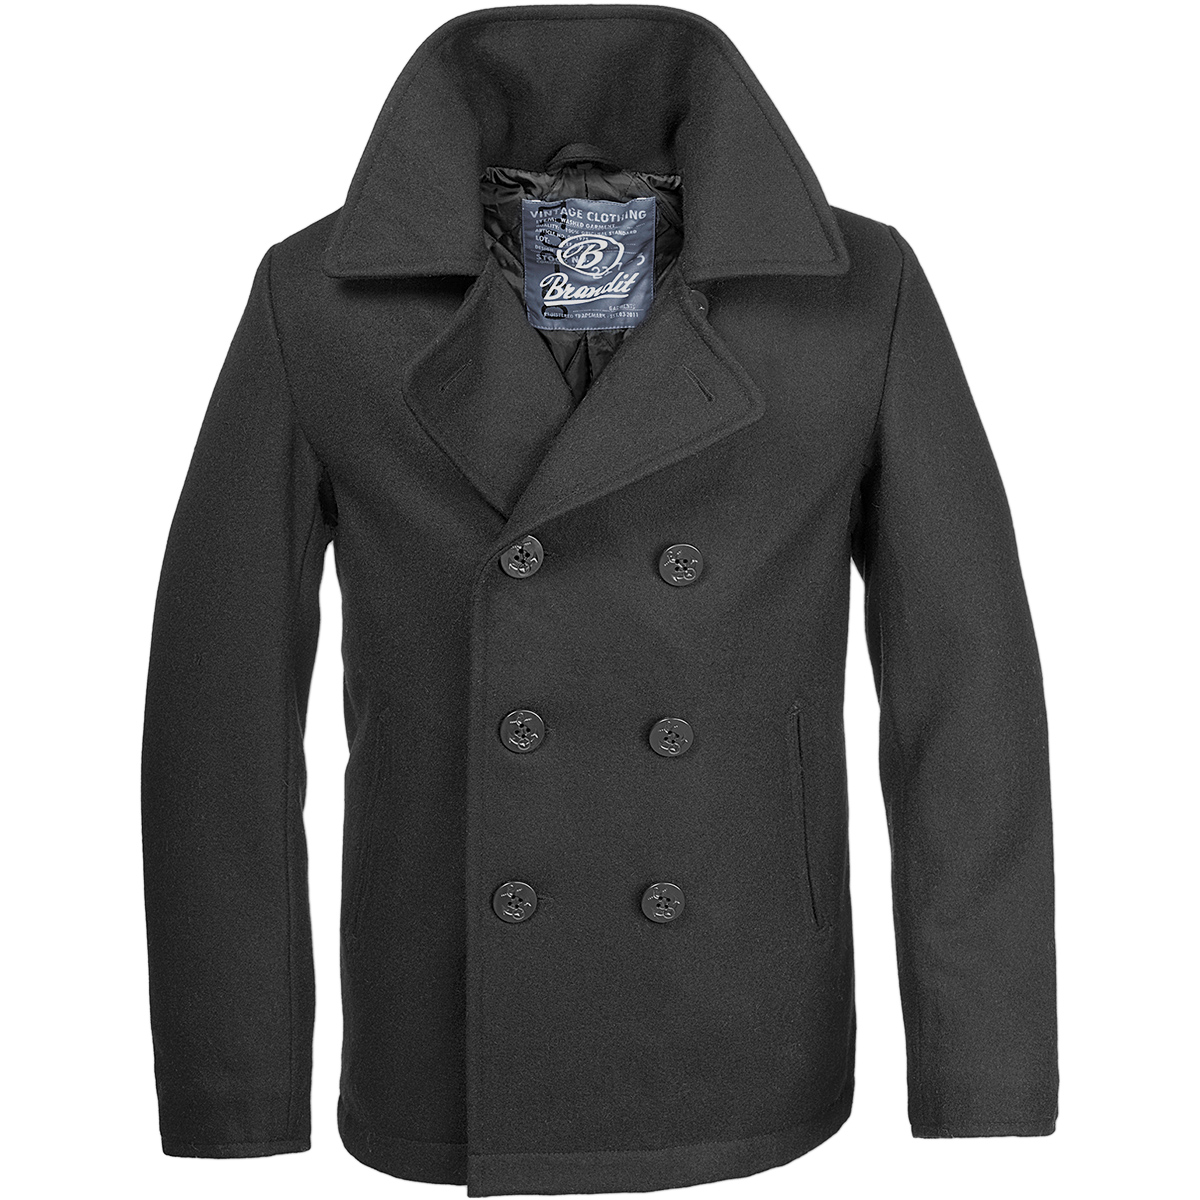 Shop the selection of Women's Pea Coats, Men's Pea Coats and Kids Pea Coats to find Pea Coats for everyone at Macy's. Fabric Clear. Acrylic (1) Cashmere Blend (5) Cotton (5) Faux Fur (1) Faux Leather (1) Fur (1) Lauren Ralph Lauren Luke Solid Wool-Blend Peacoat.